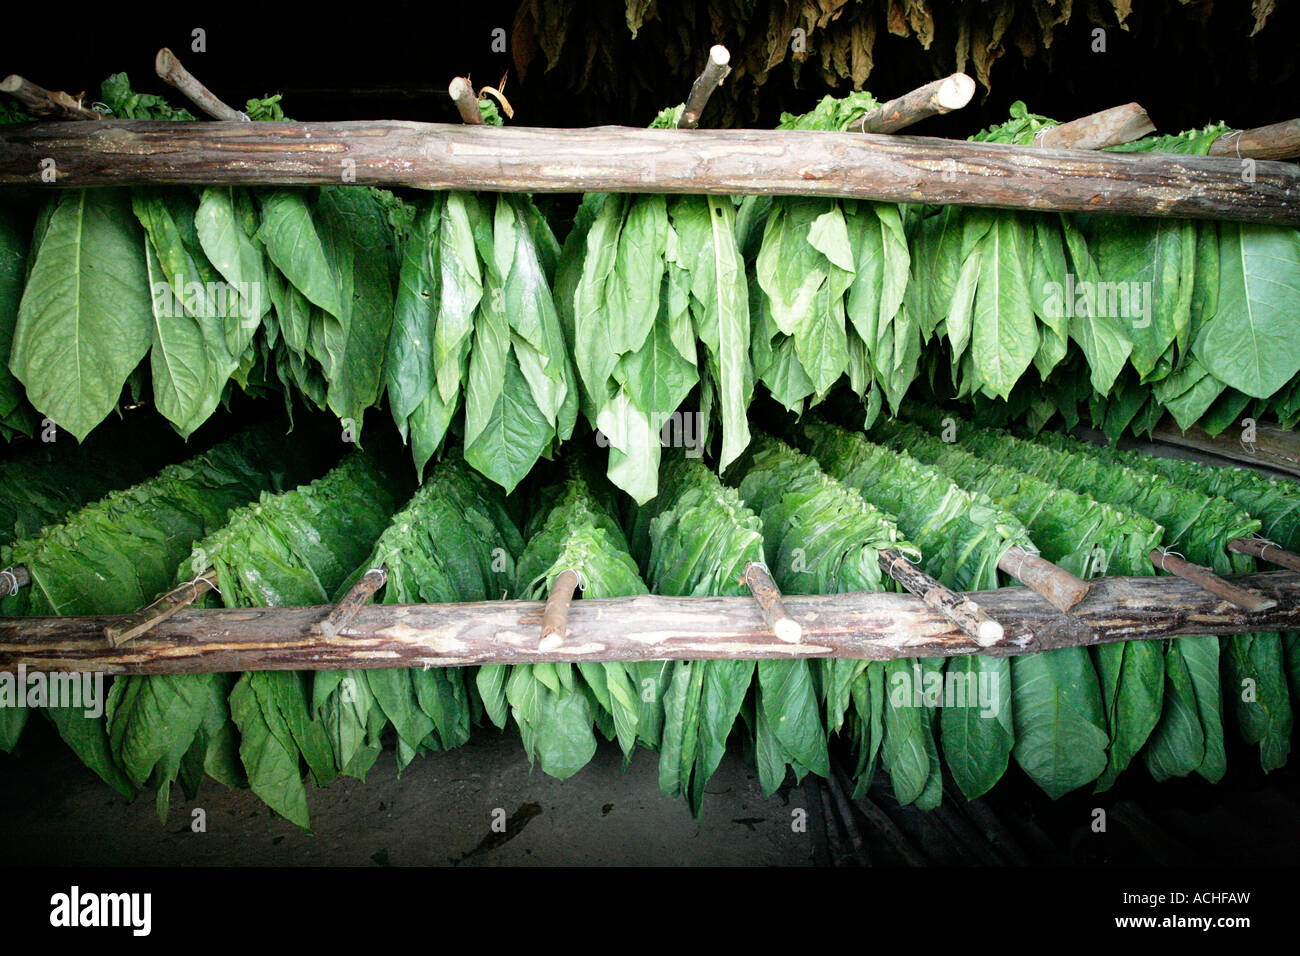 Stock Photo of Tobacco Leaves, Drying on a Rack. - Stock Image